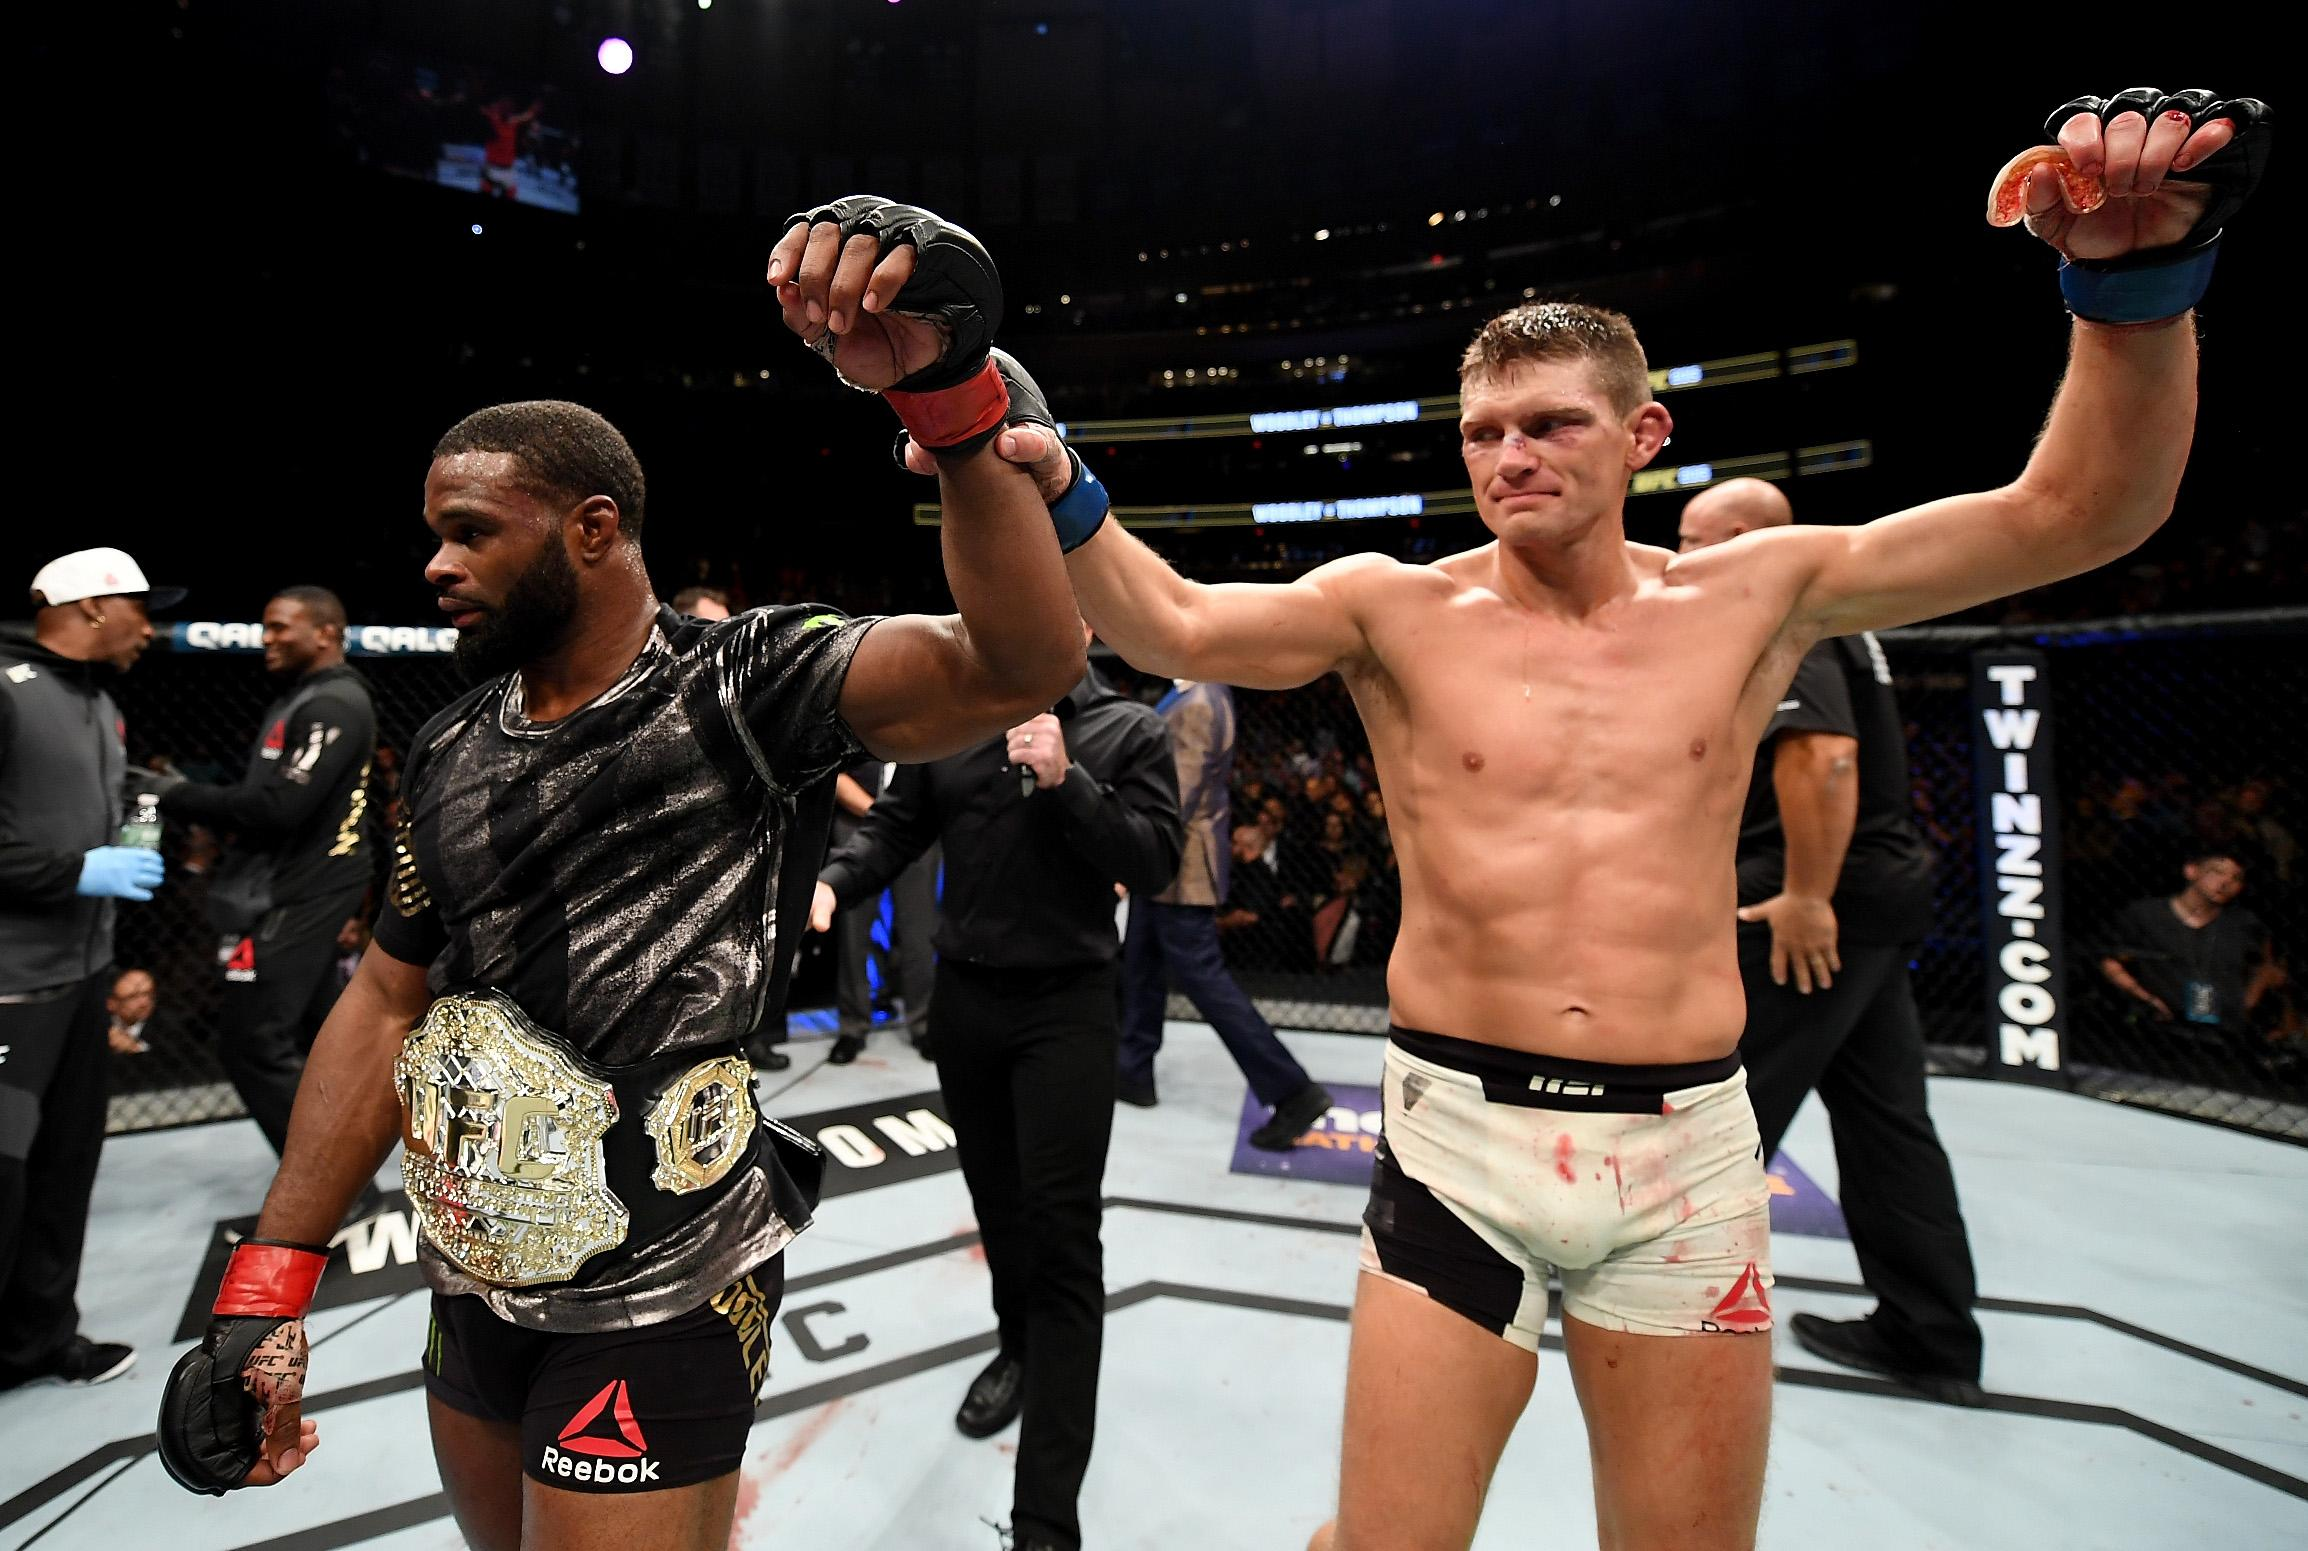 The 35-year-old drew with Woodley at UFC 205, before losing a points decision at UFC 209